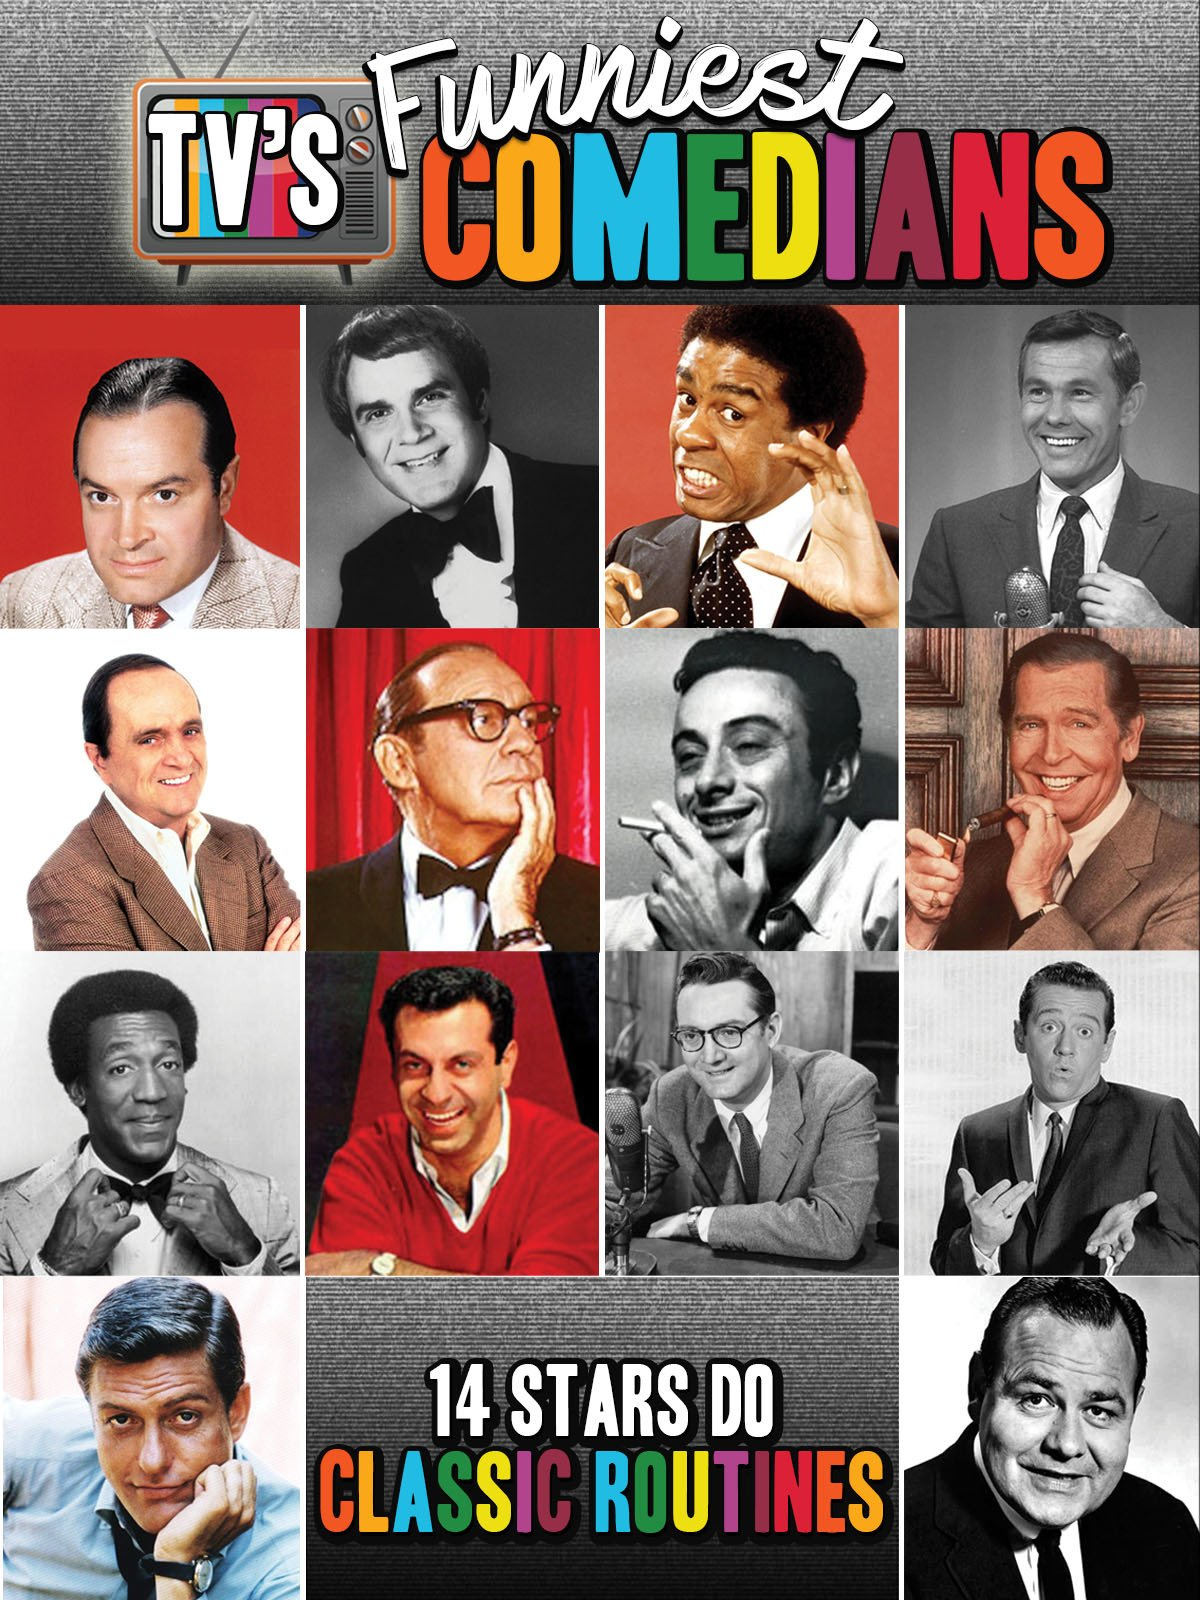 TV's Funniest Comedians